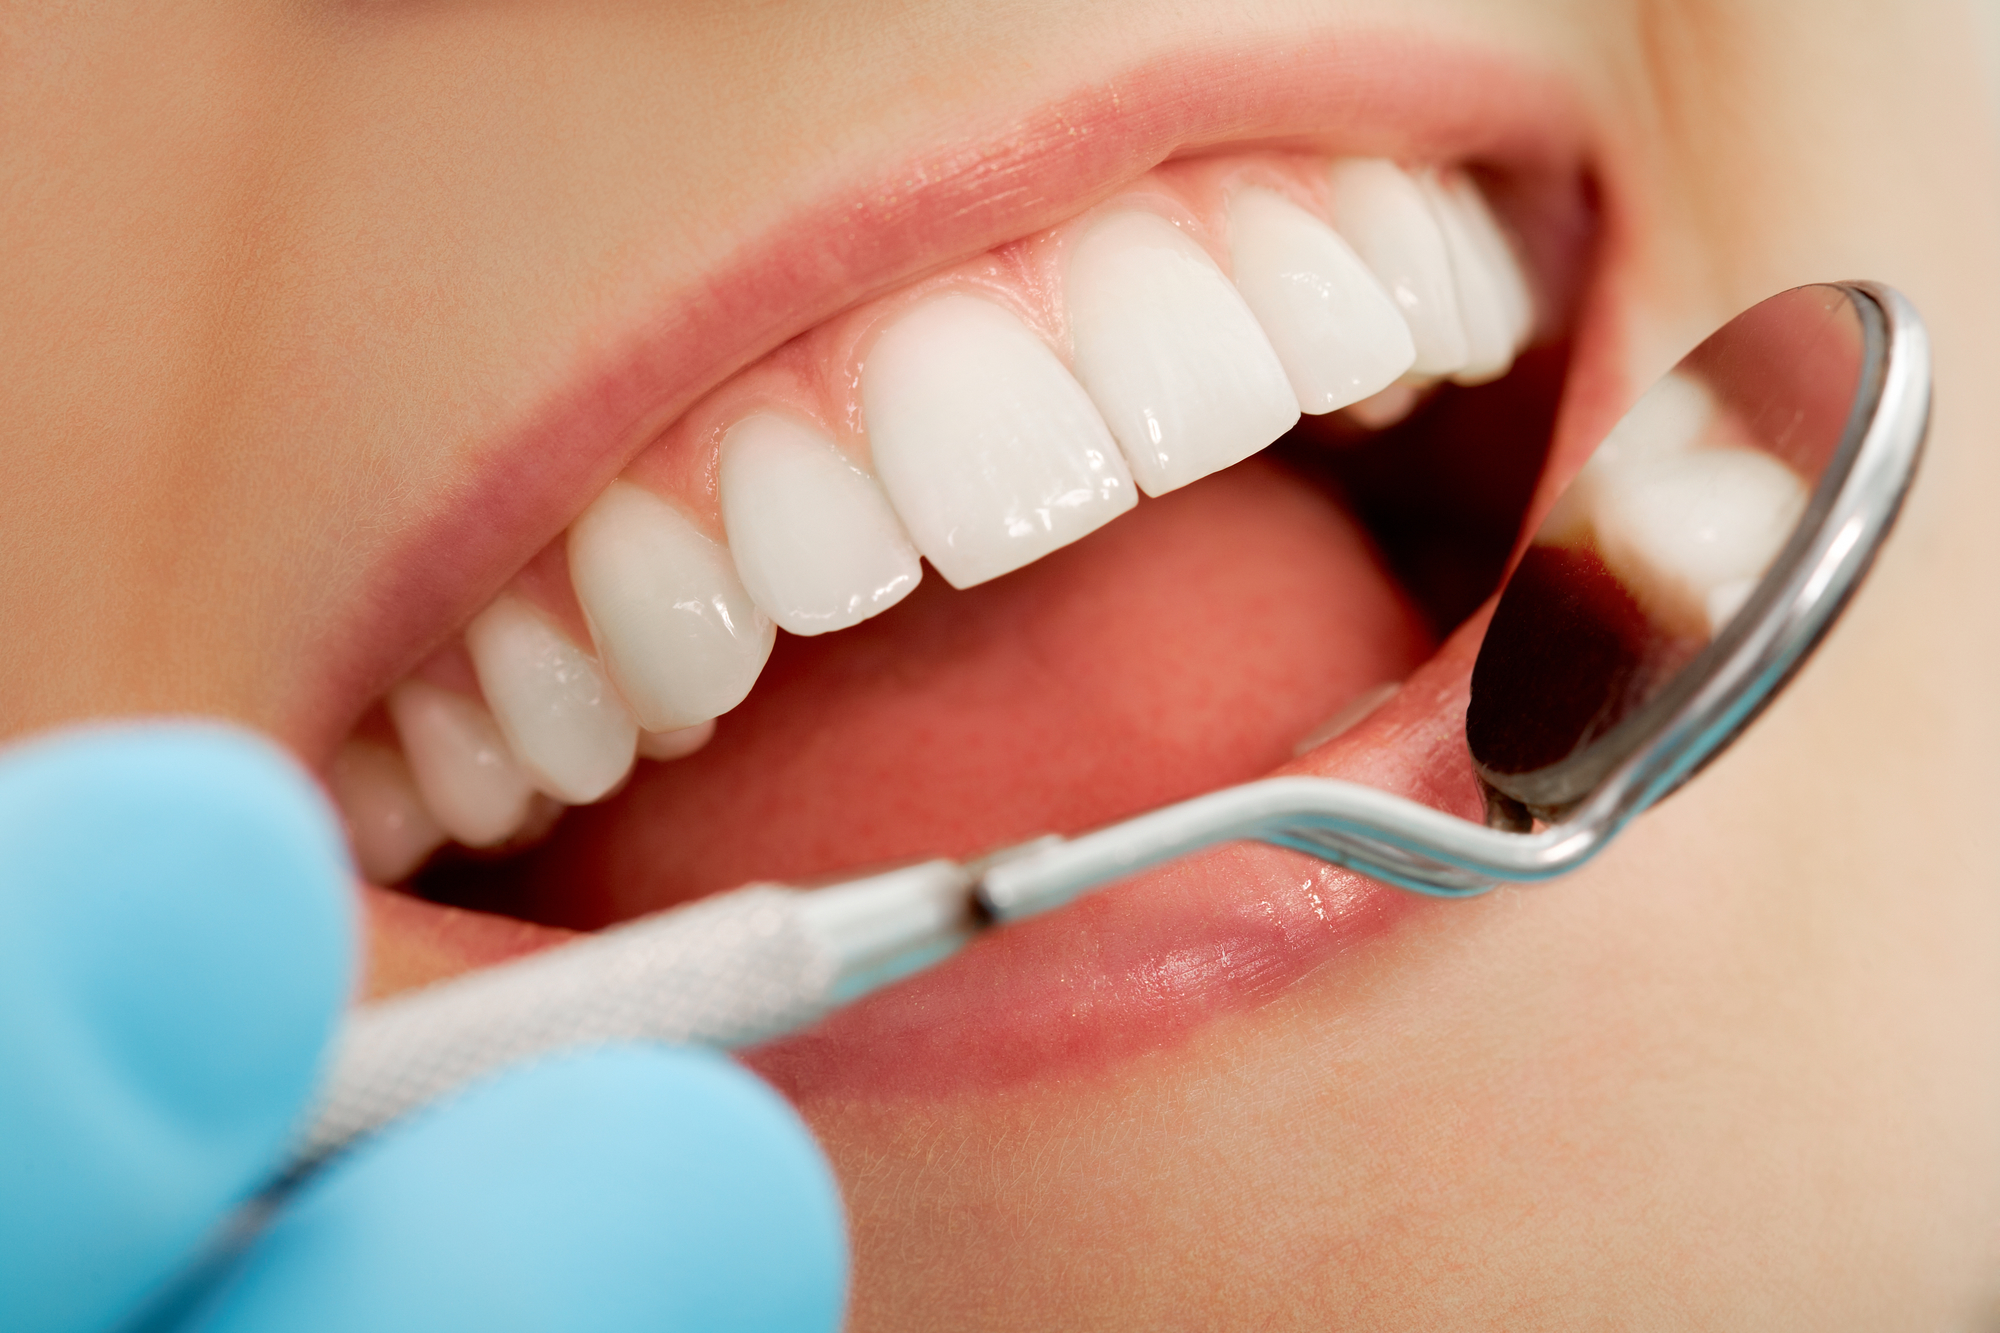 Where can I get dental implants in Aventura?